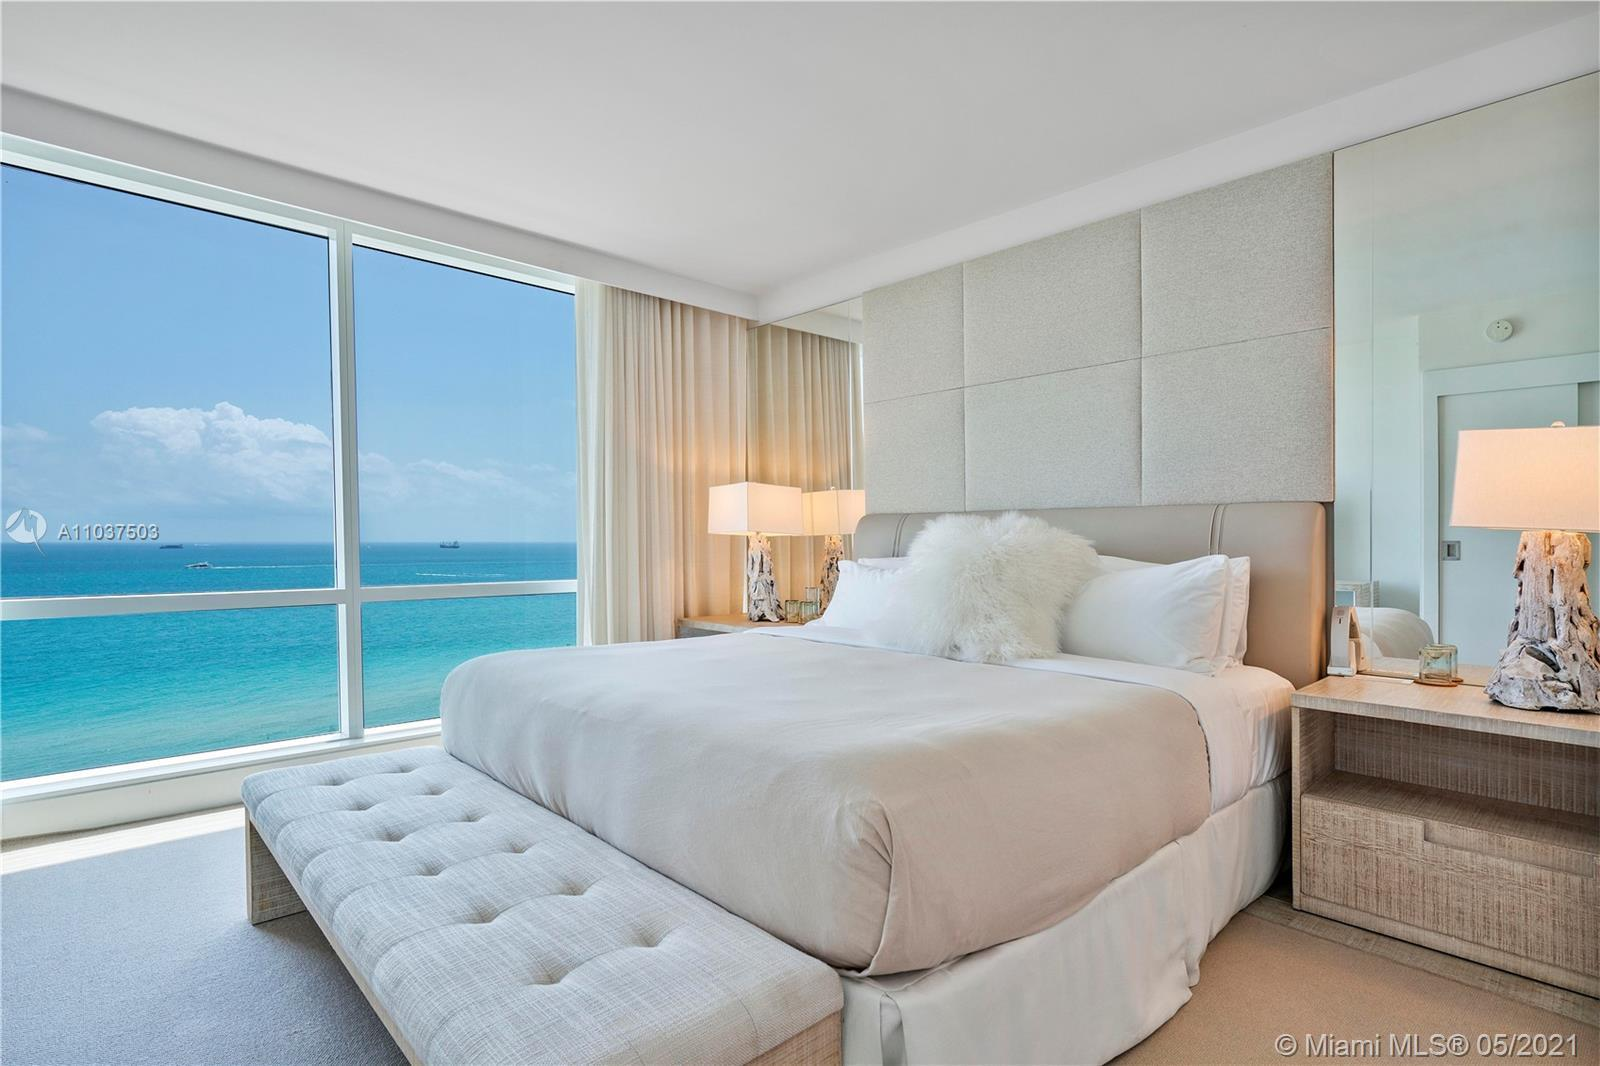 Amazing direct ocean 3 bedroom with breathtaking views of the ocean. The perfect Miami Beach spot to